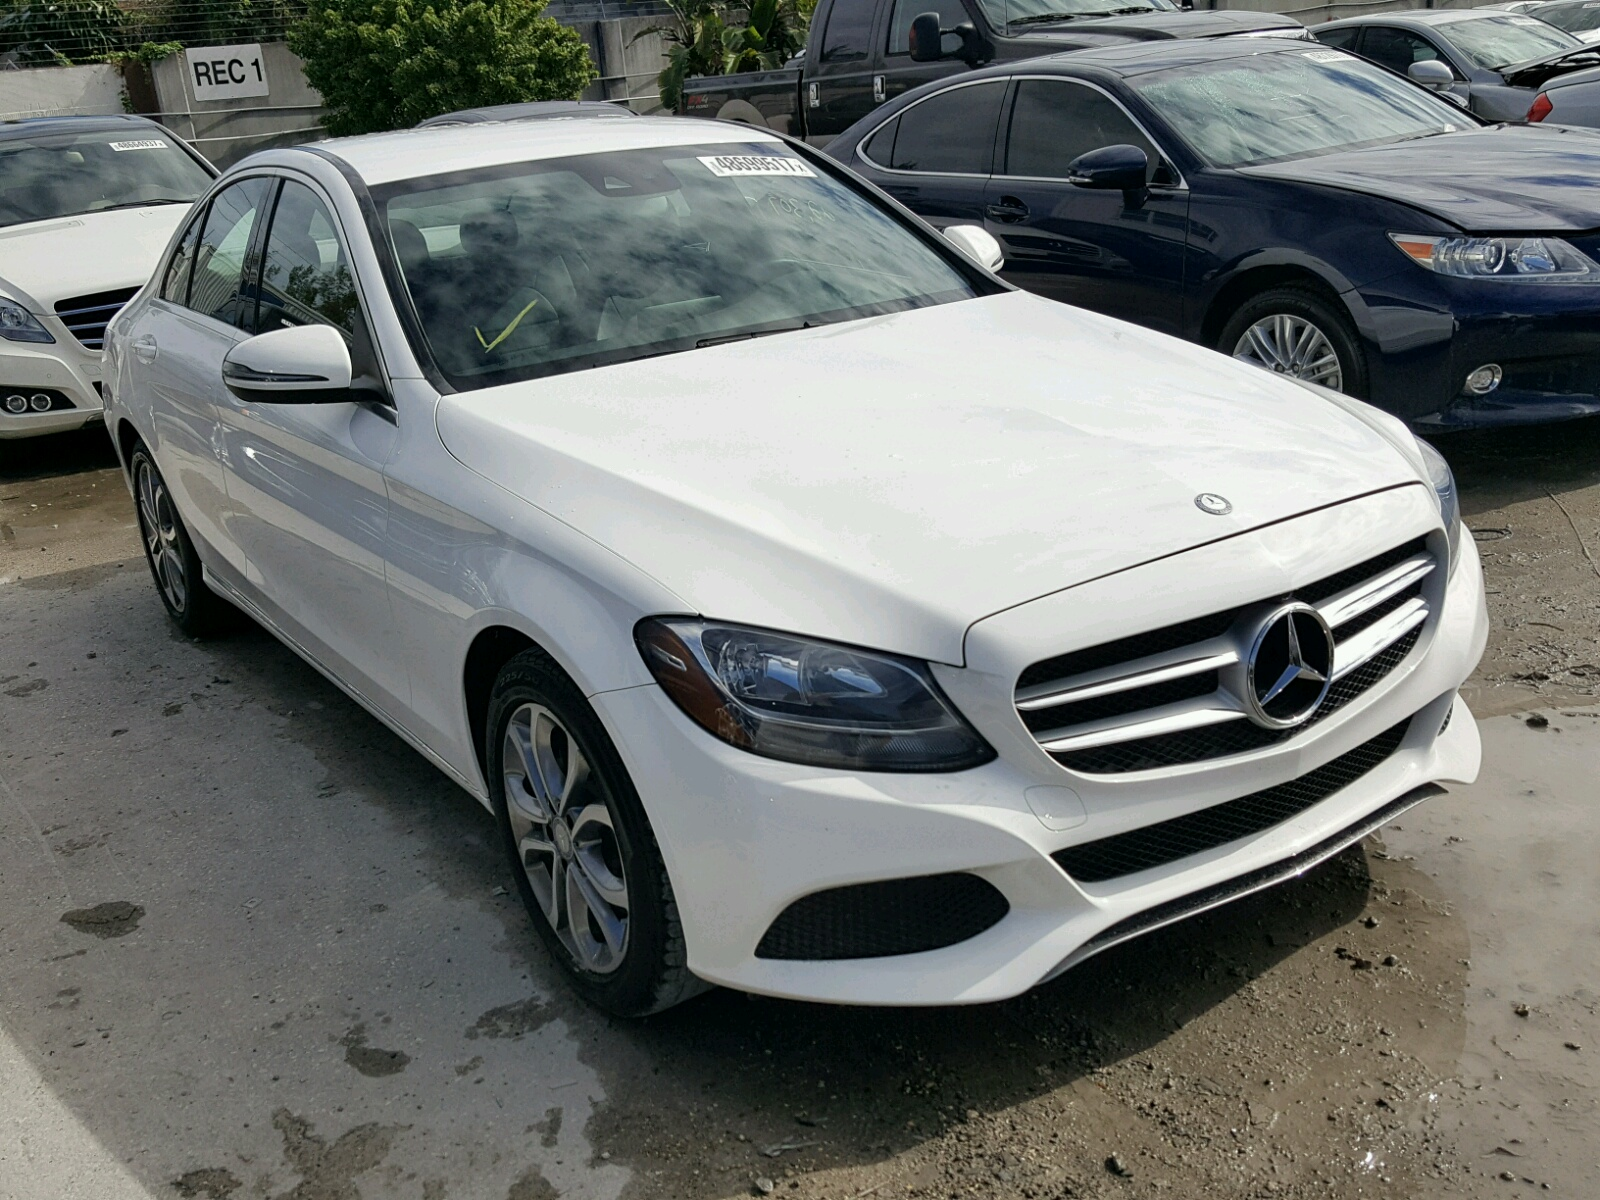 Auto auction ended on vin 55swf4jb9gu118316 2016 mercedes for Mercedes benz car auctions